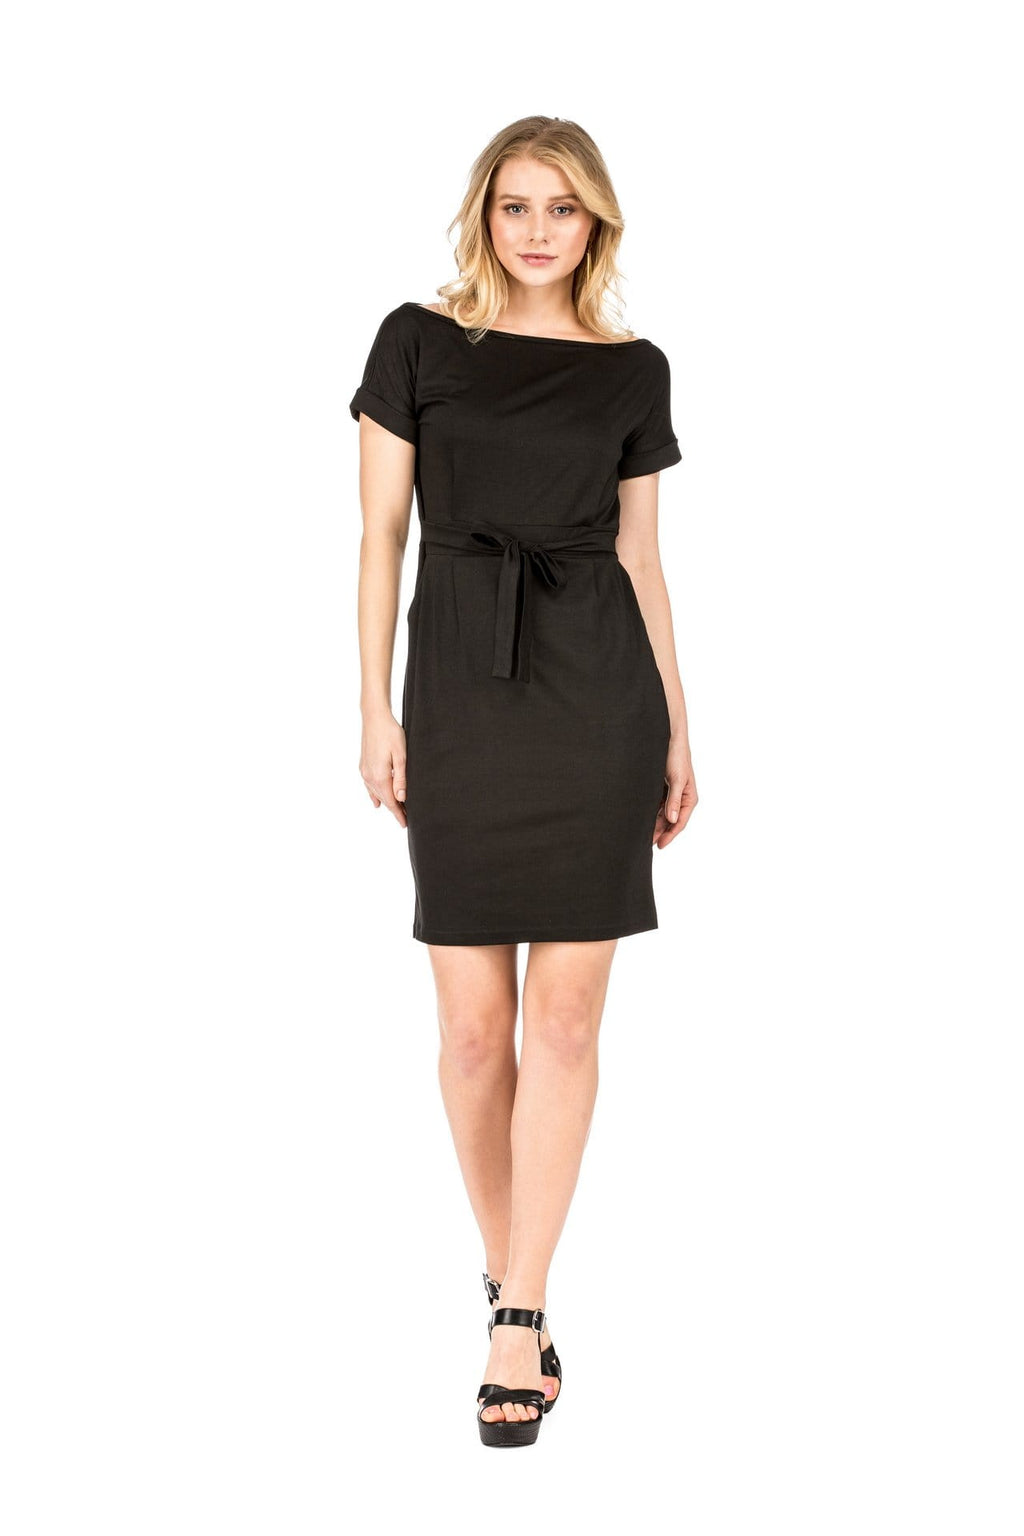 DAILYHAUTE Women's dress BLACK / S Haute Edition Women's Work Casual Pencil Dress With Pockets